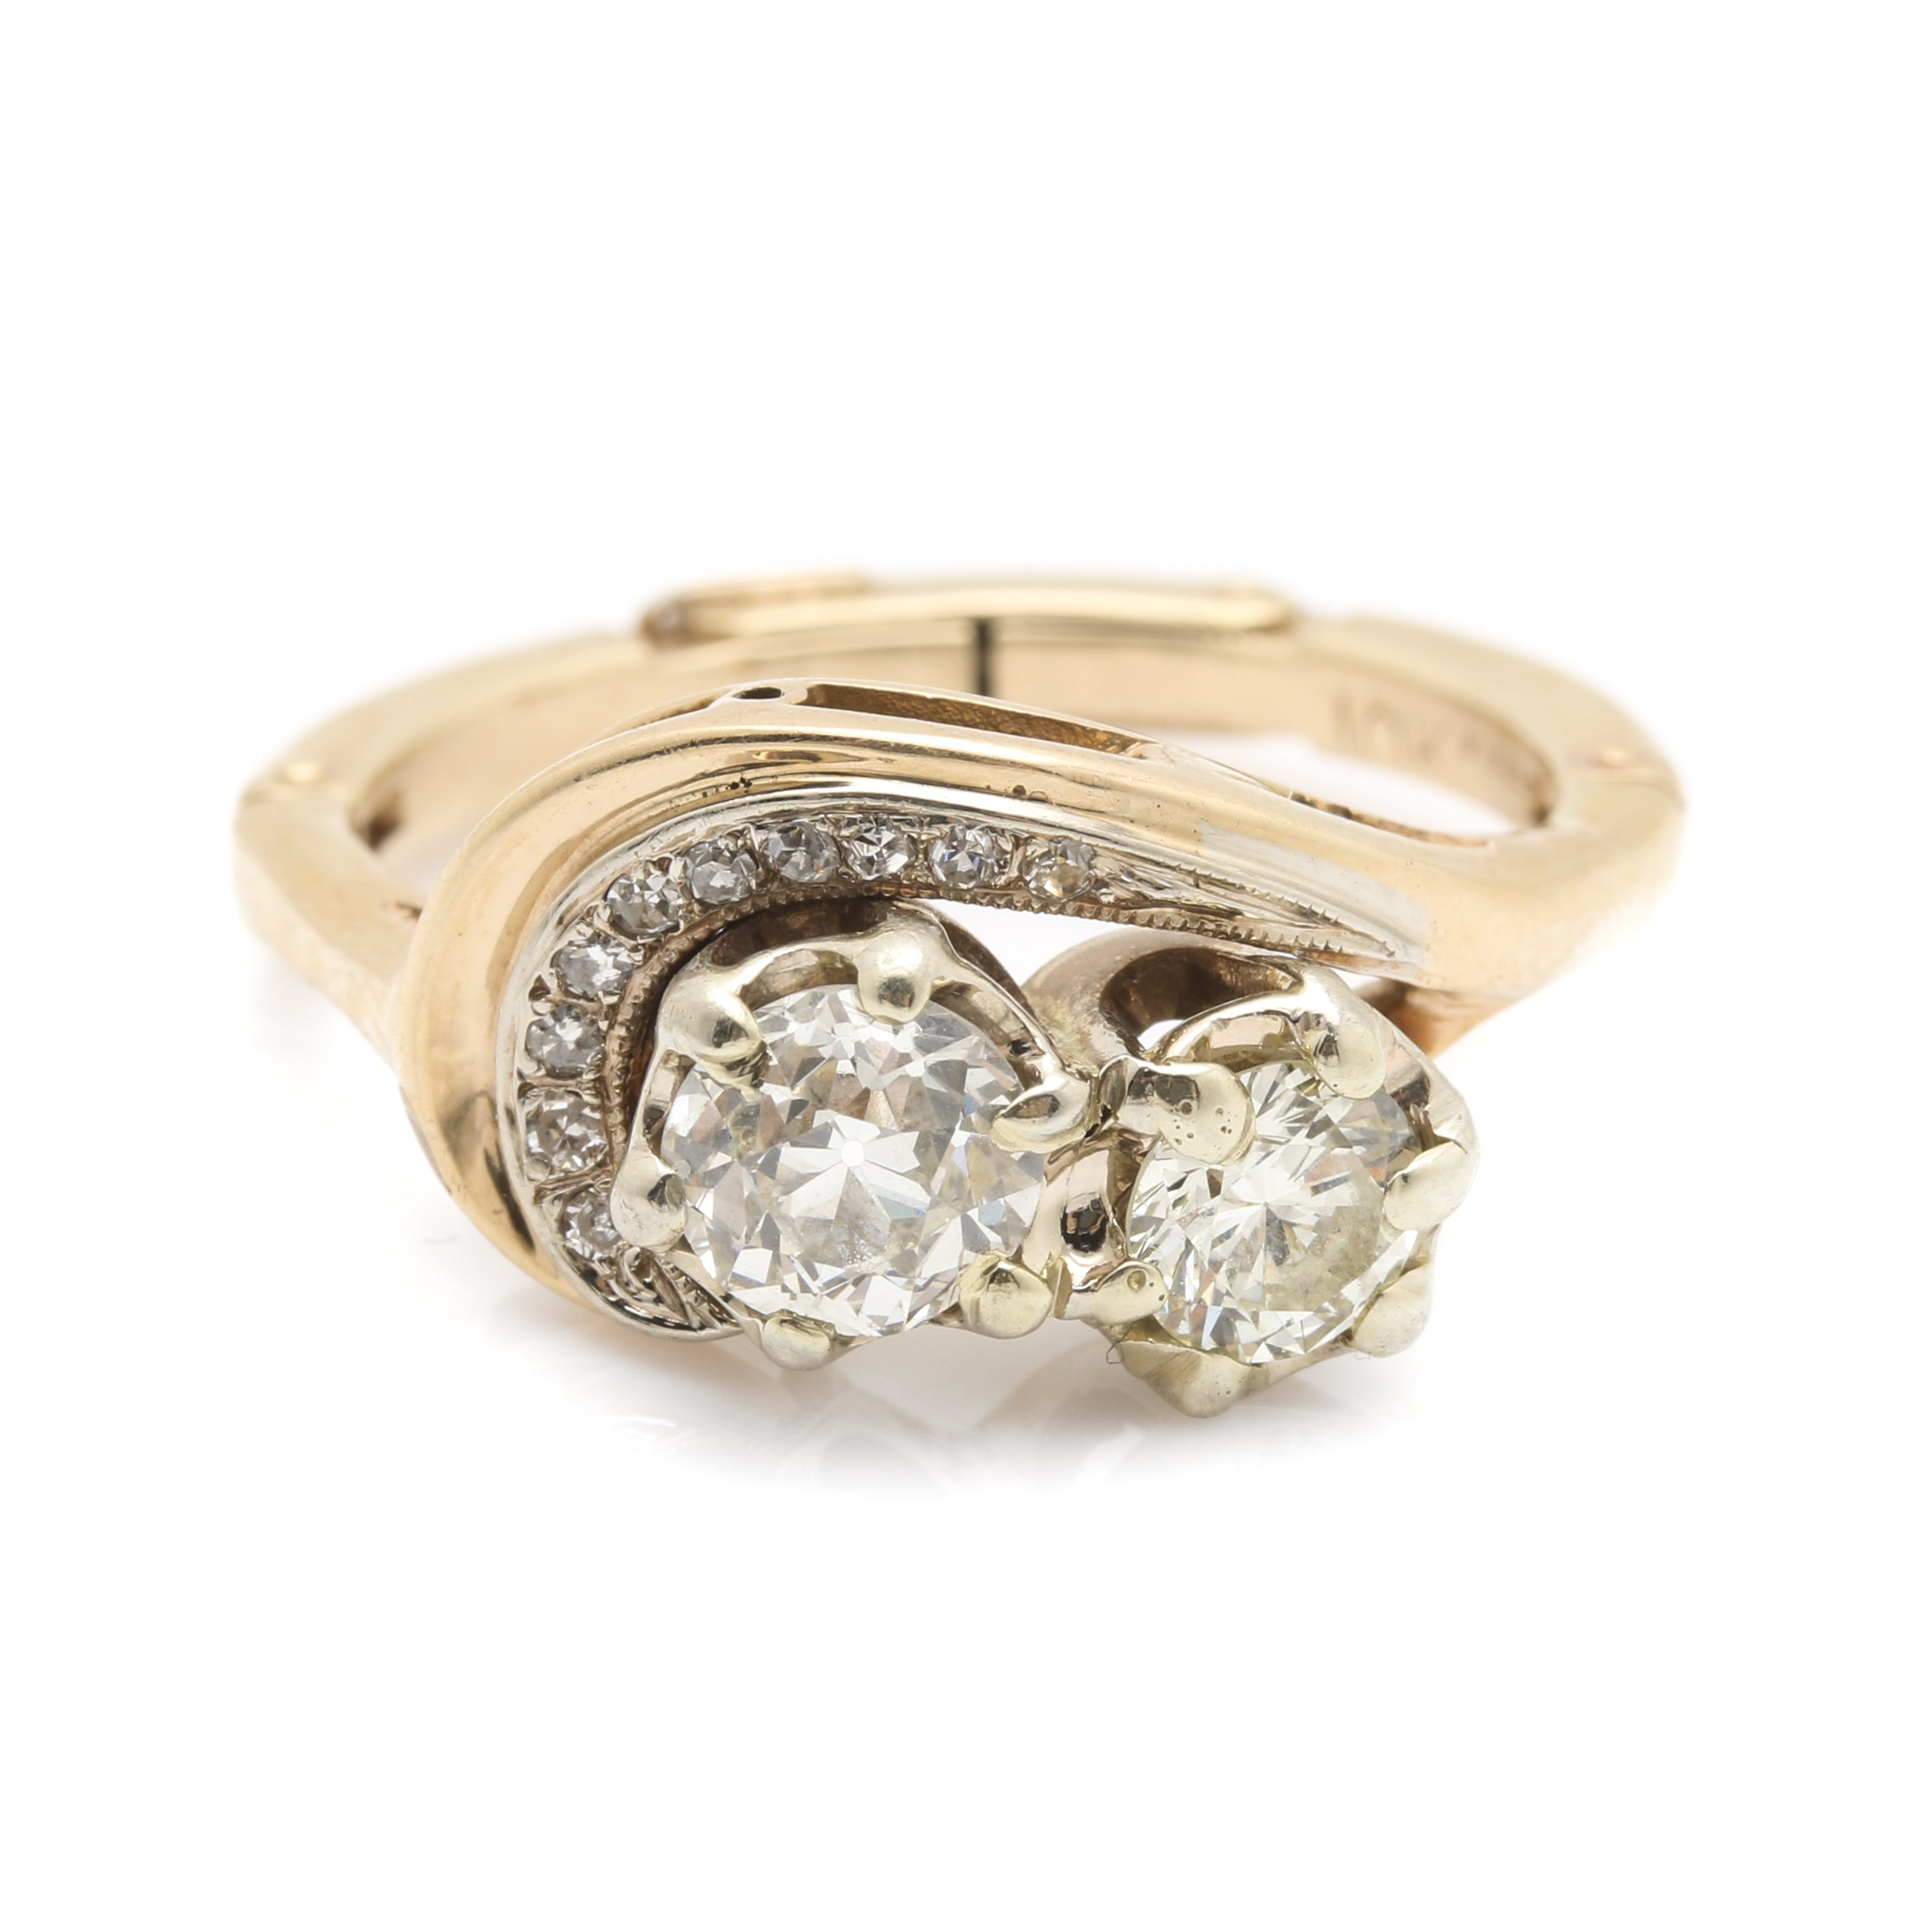 10K and 14K Yellow Gold 0.97 CTW Diamond Ring